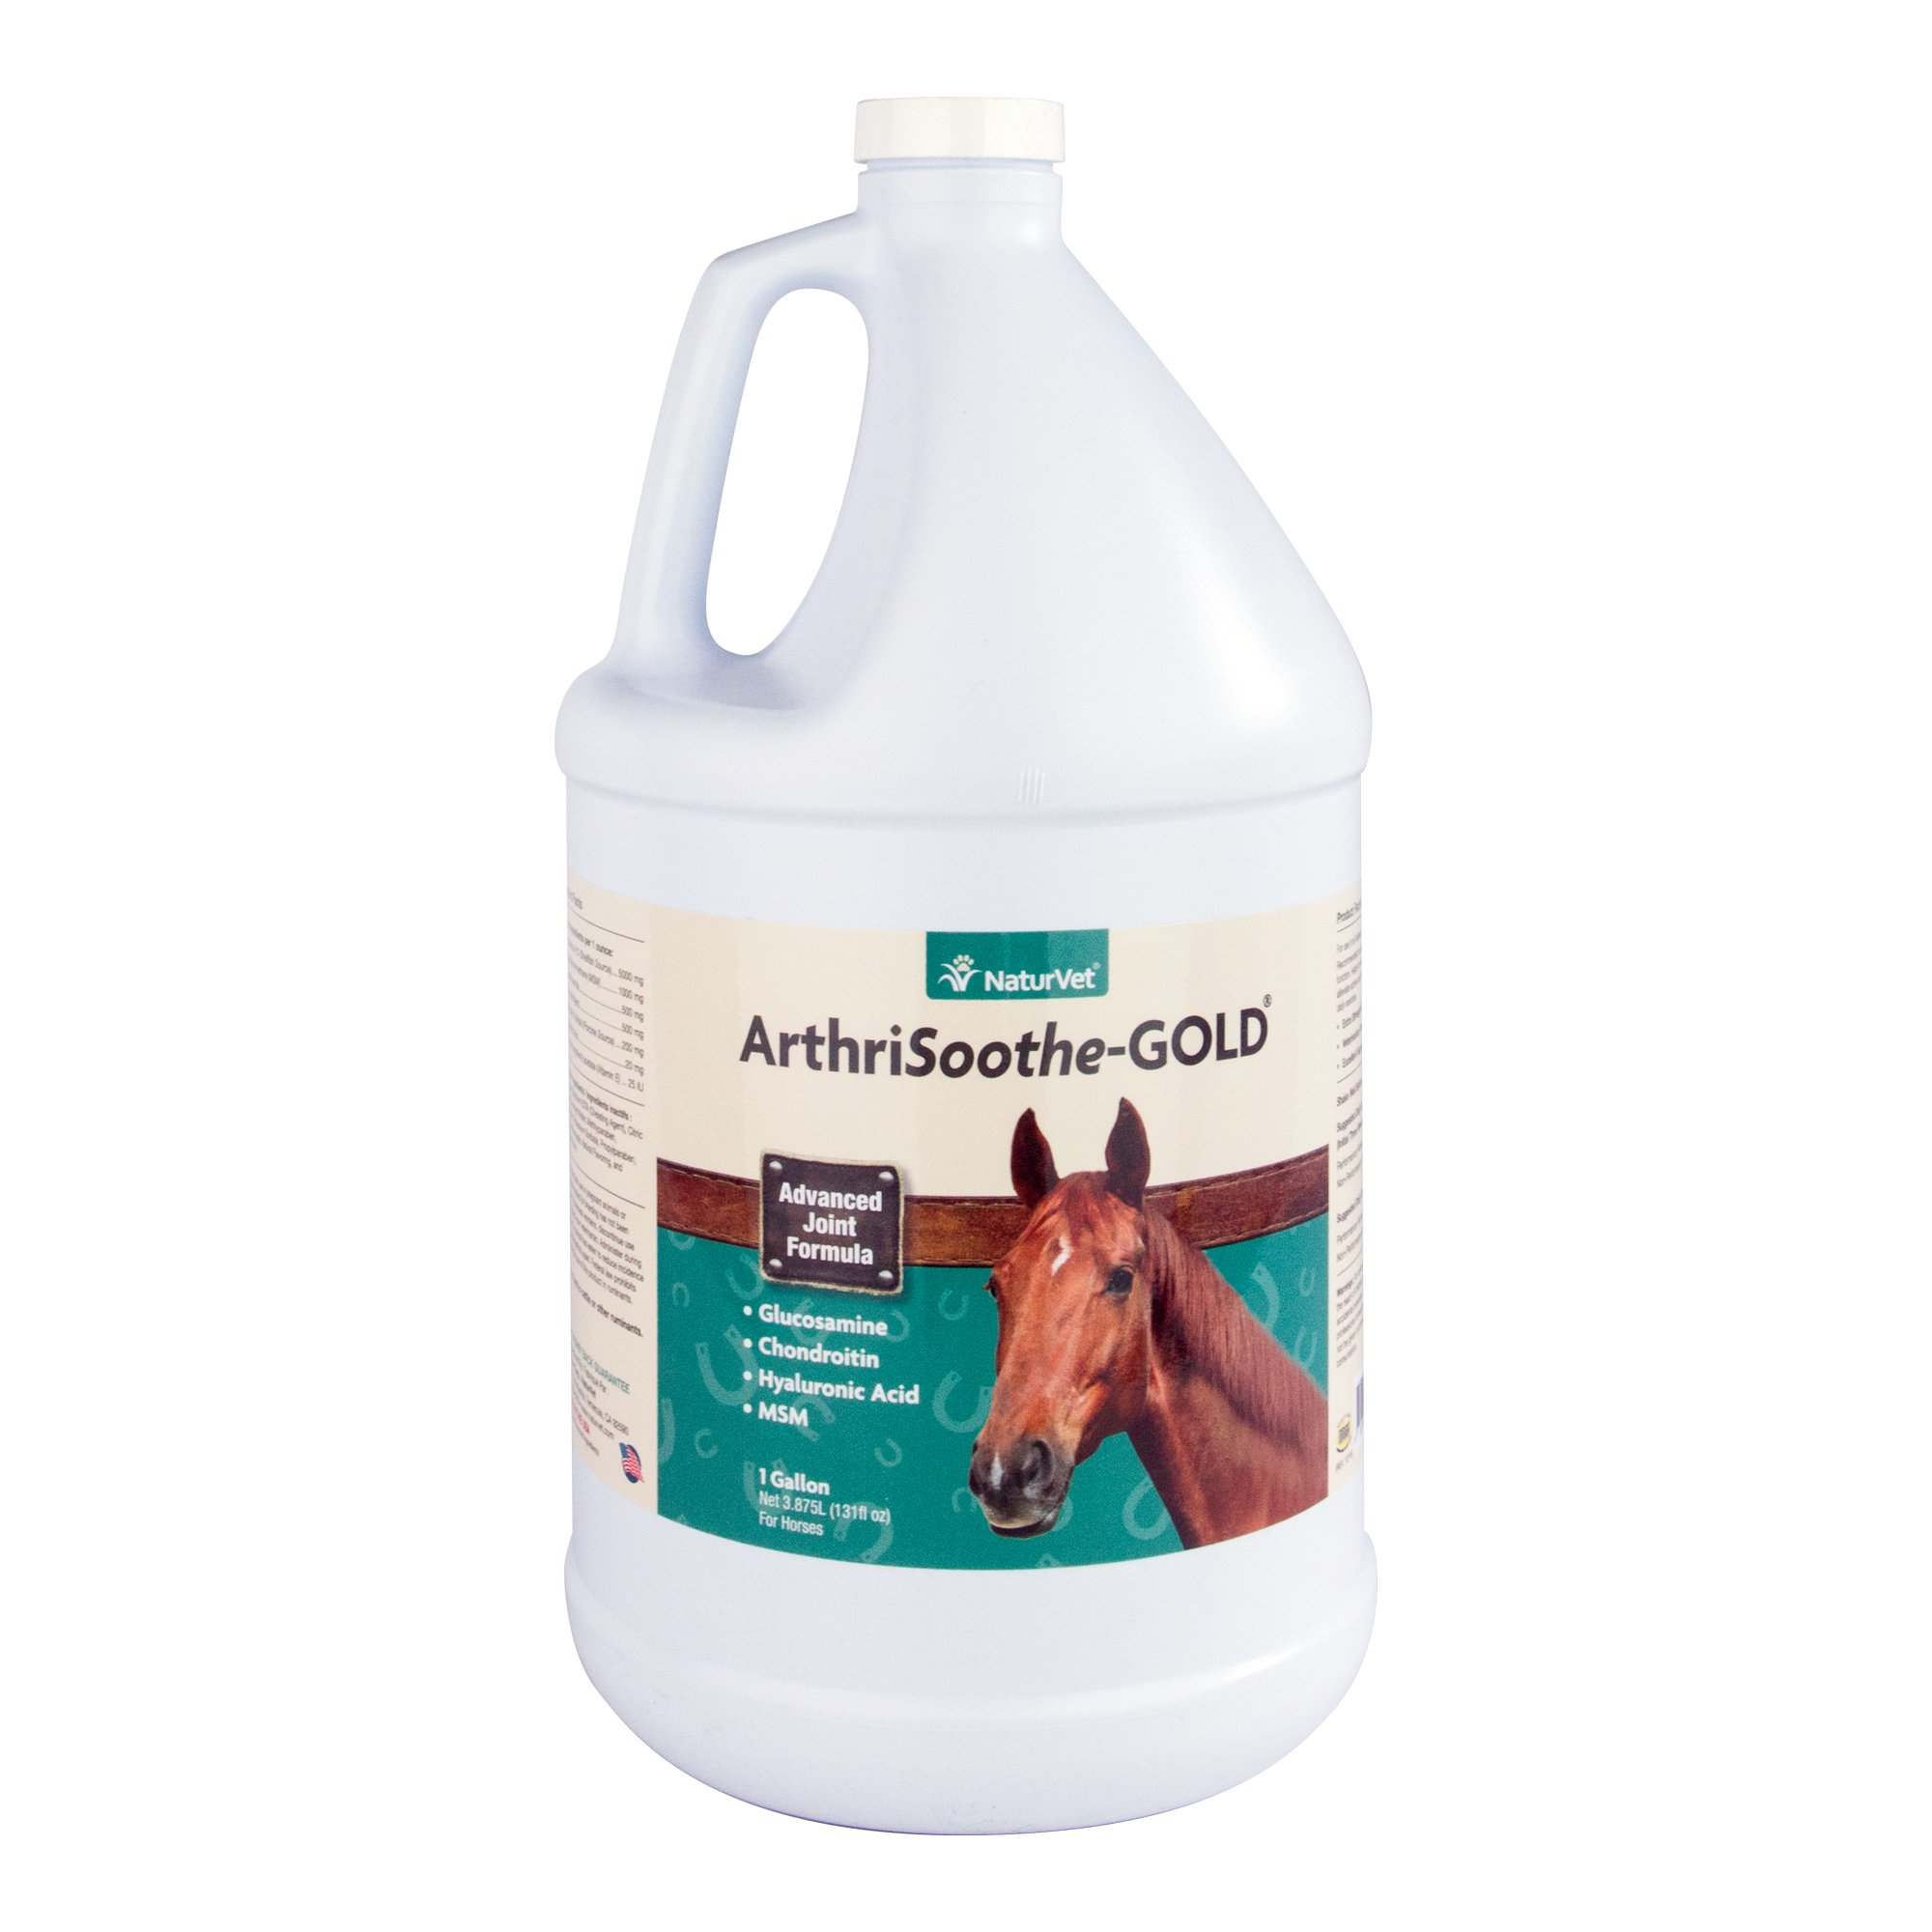 NaturVet ArthriSoothe-GOLD Advanced Equine Glucosamine Joint Supplement Formula for Horses, Liquid, Made in the USA, 1 Gallon